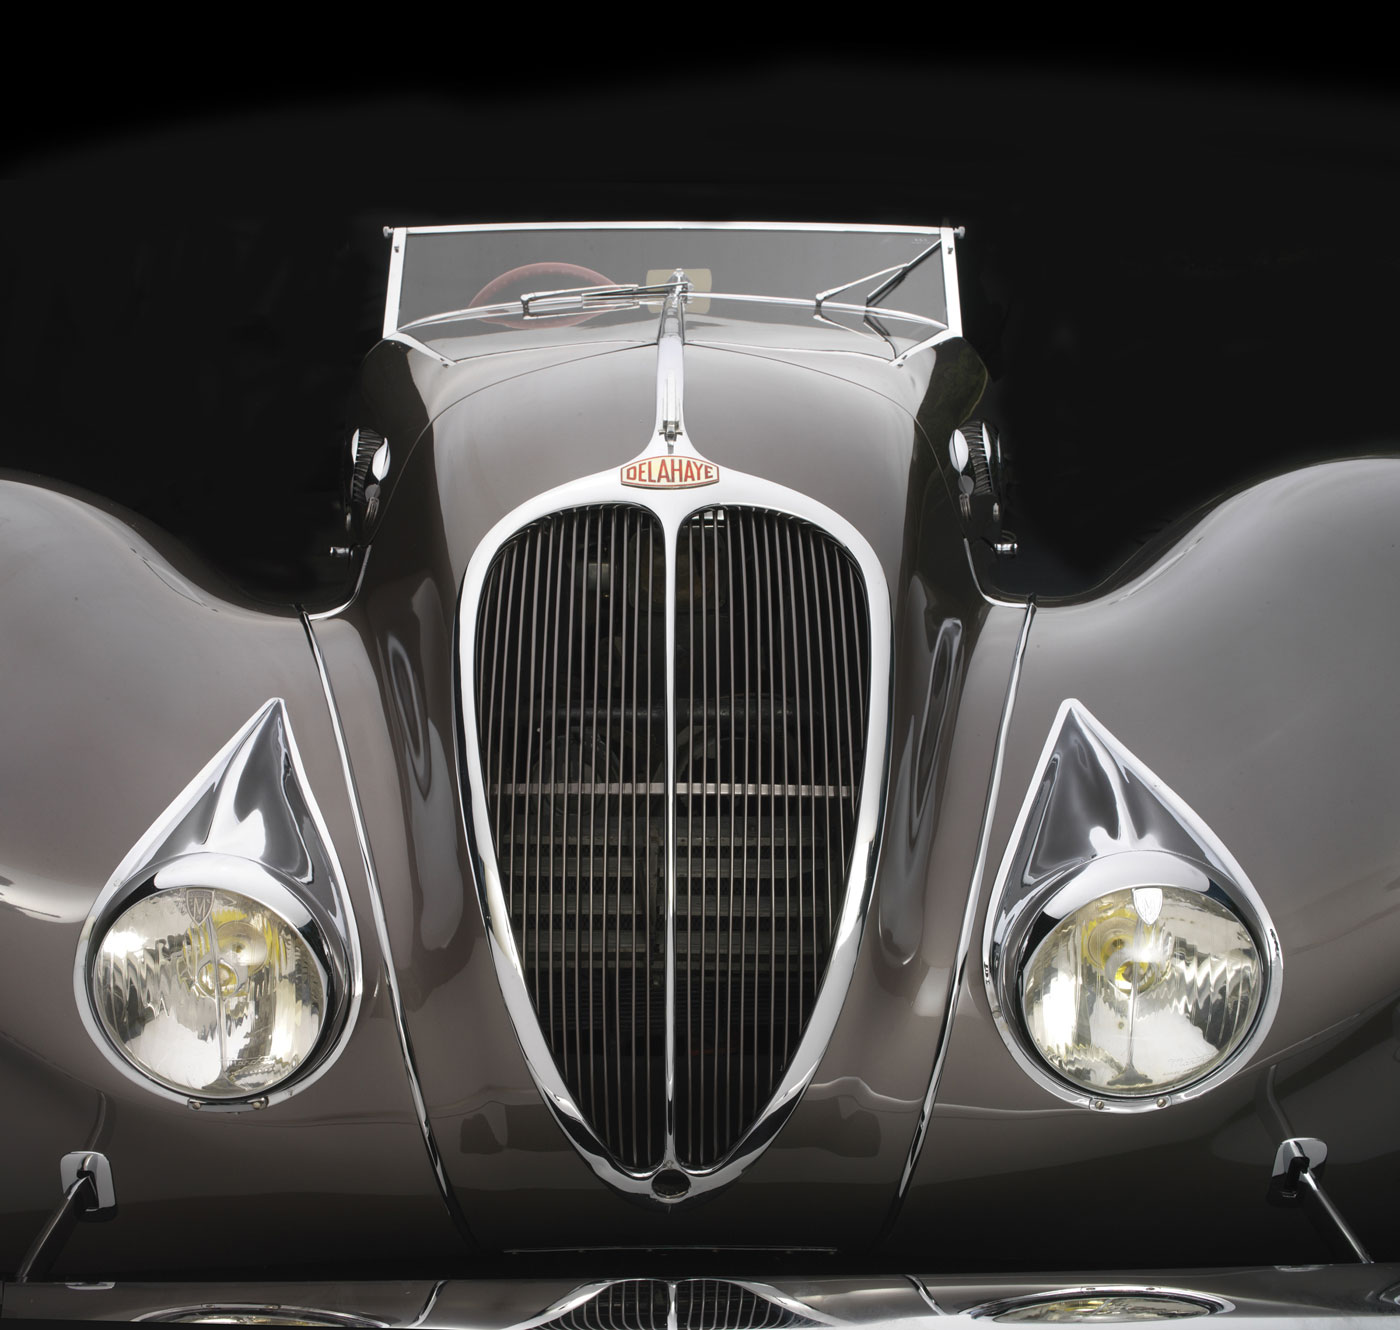 Cars For Sale By Owner In Nashville Tn >> Exhibition: 'Sensuous Steel: Art Deco Automobiles' at The ...